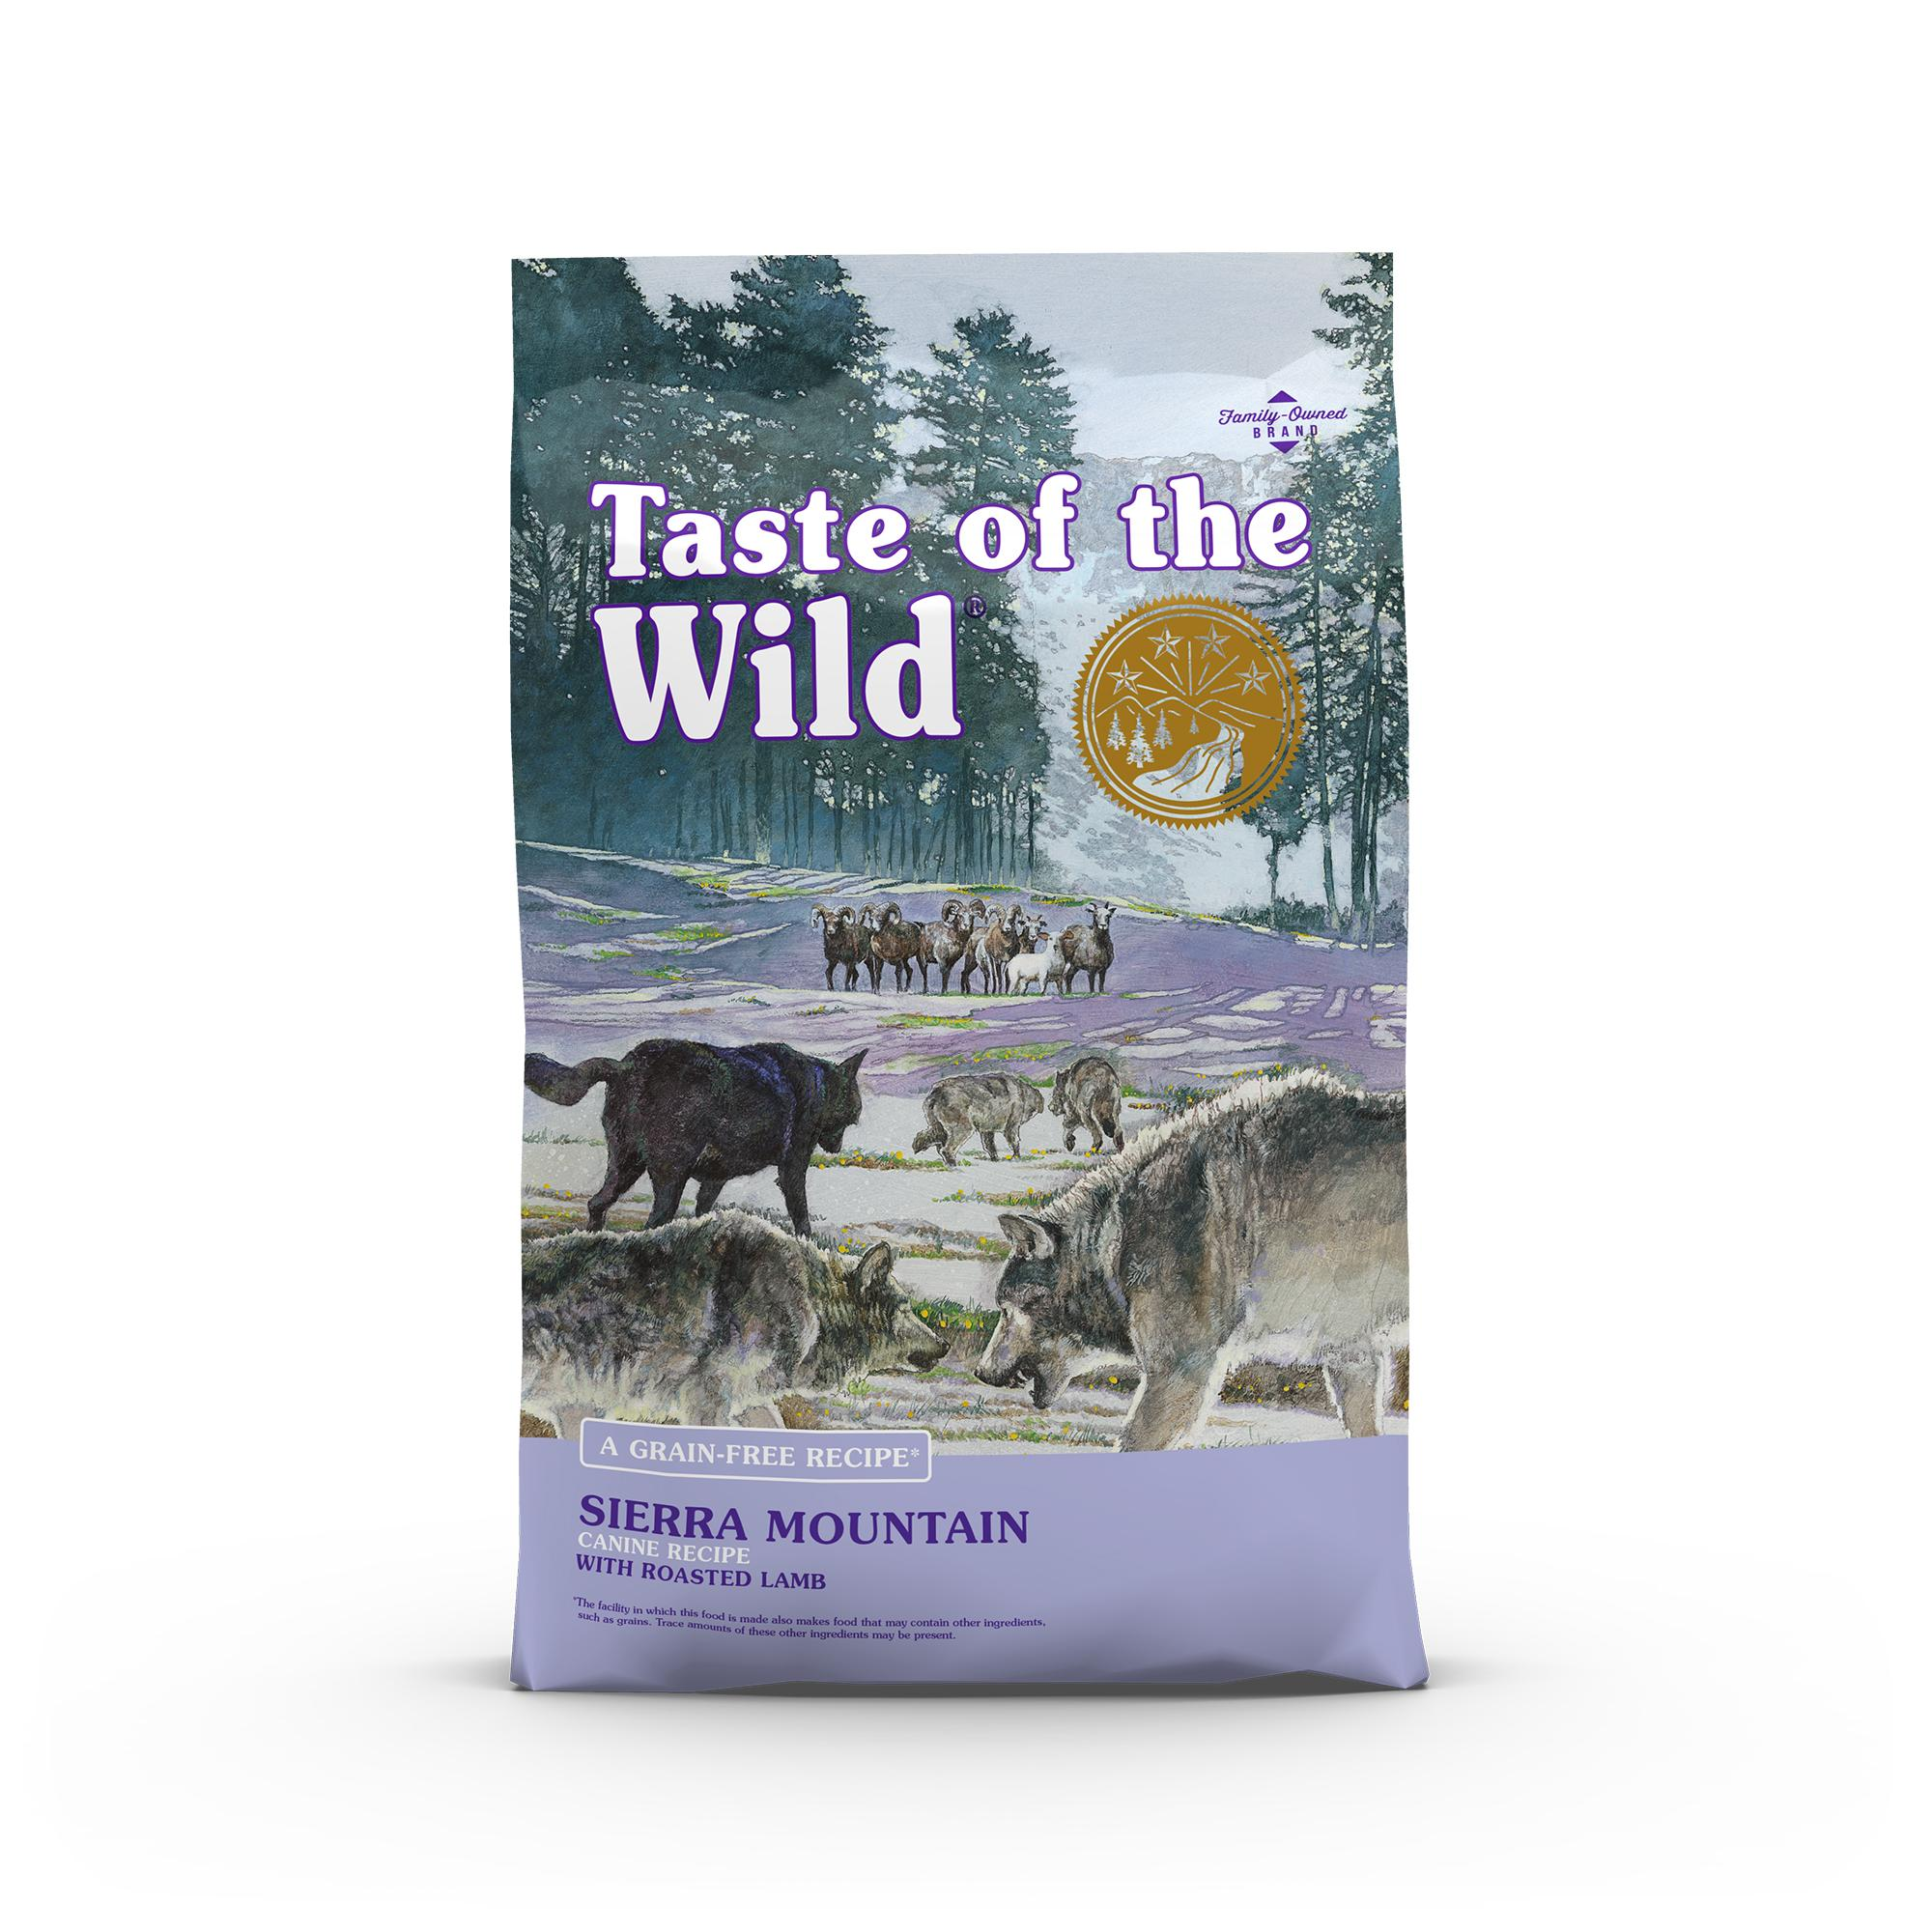 Taste of the Wild Sierra Mountain Grain-Free Dry Dog Food Image